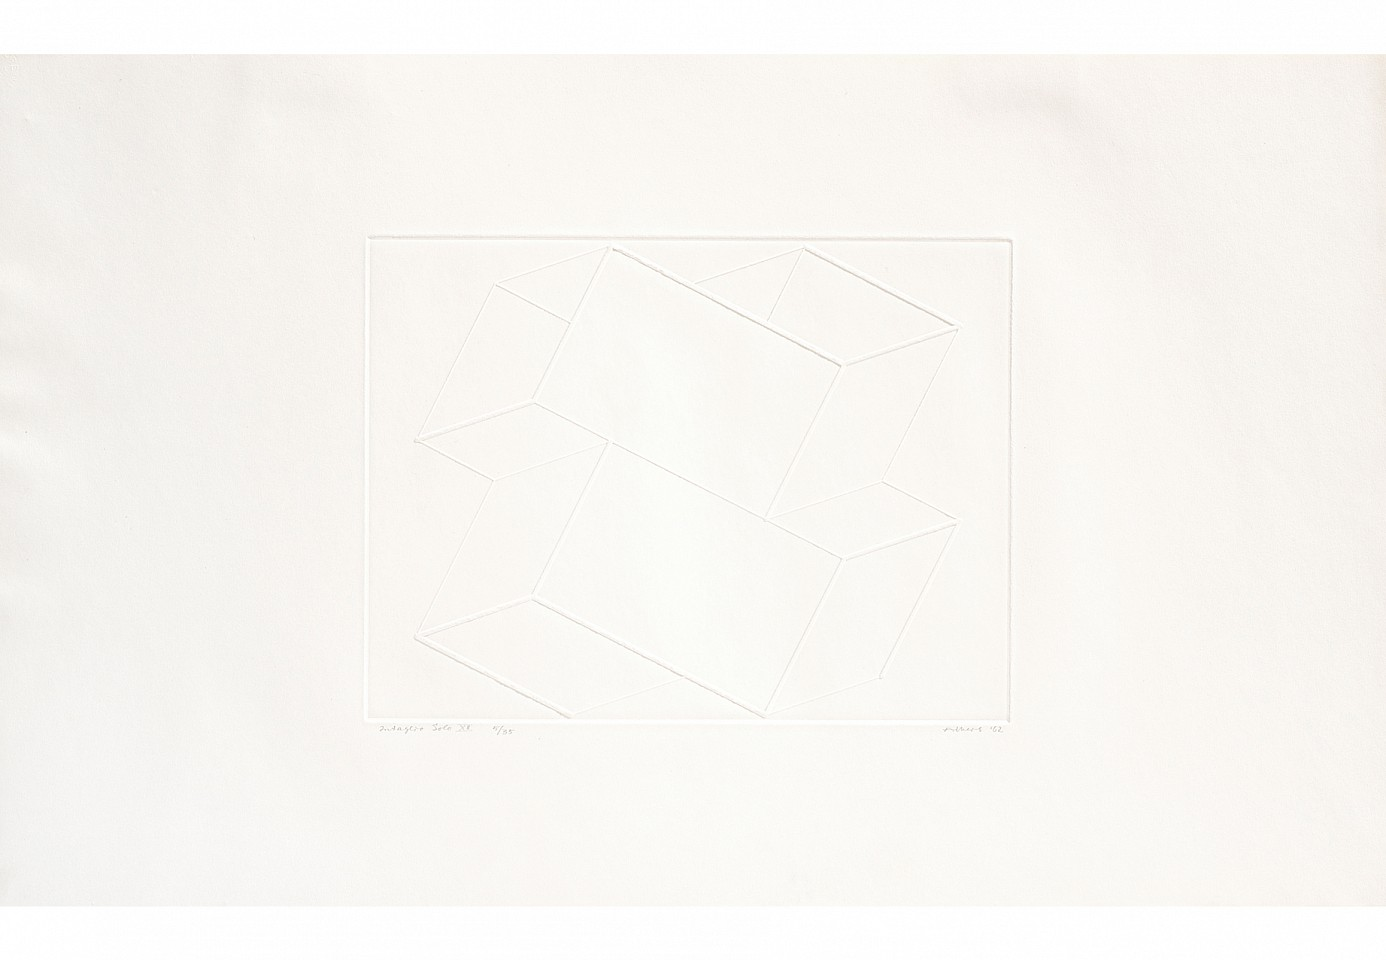 "<p><span class=""viewer-caption-artist"">Josef Albers</span></p> <p><span class=""viewer-caption-title""><i>Intaglio Solo XII</i></span>, <span class=""viewer-caption-year"">1962</span></p> <p><span class=""viewer-caption-media"">Inkless intaglio from brass plate on Arches deckle edge paper</span></p> <p><span class=""viewer-caption-dimensions"">35.6 x 56.2 cm (14 x 22 1/8 in.)</span></p> <p><span class=""viewer-caption-inventory"">JOA0000</span></p> <p><span class=""viewer-caption-aux""></span></p>"